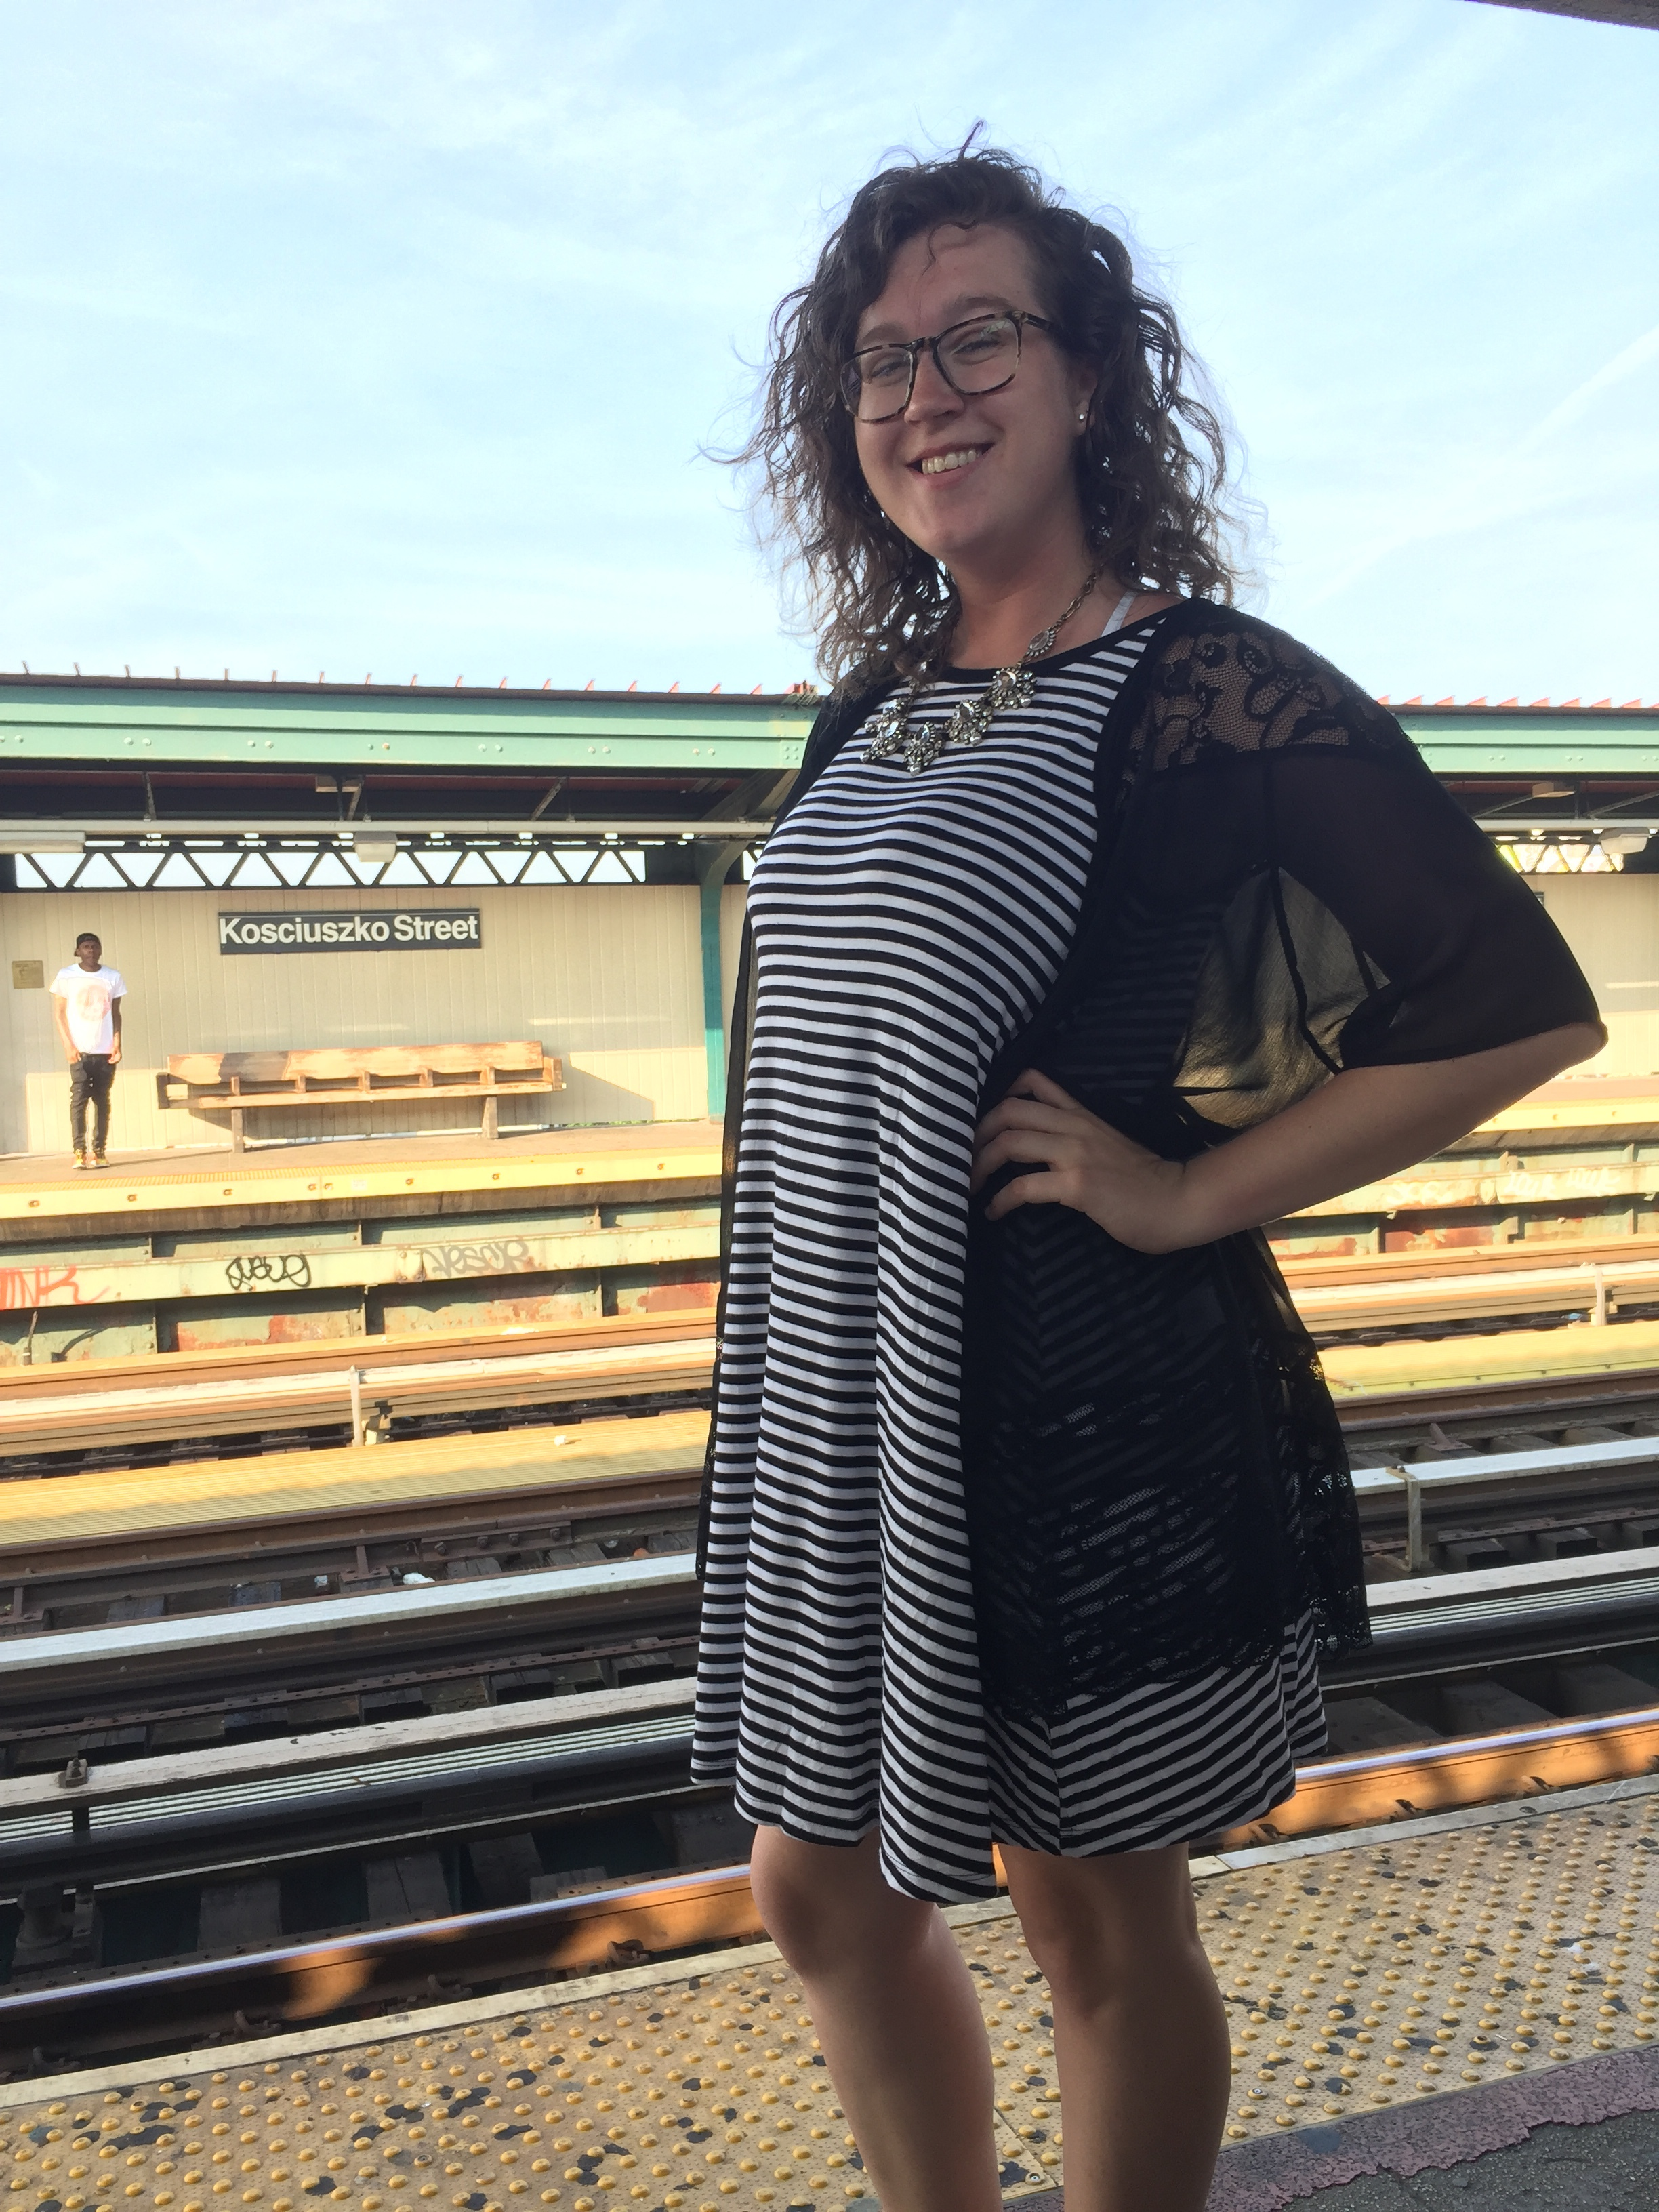 Aug 21–Ready for my first day of work at the subway station before my first daily commute.